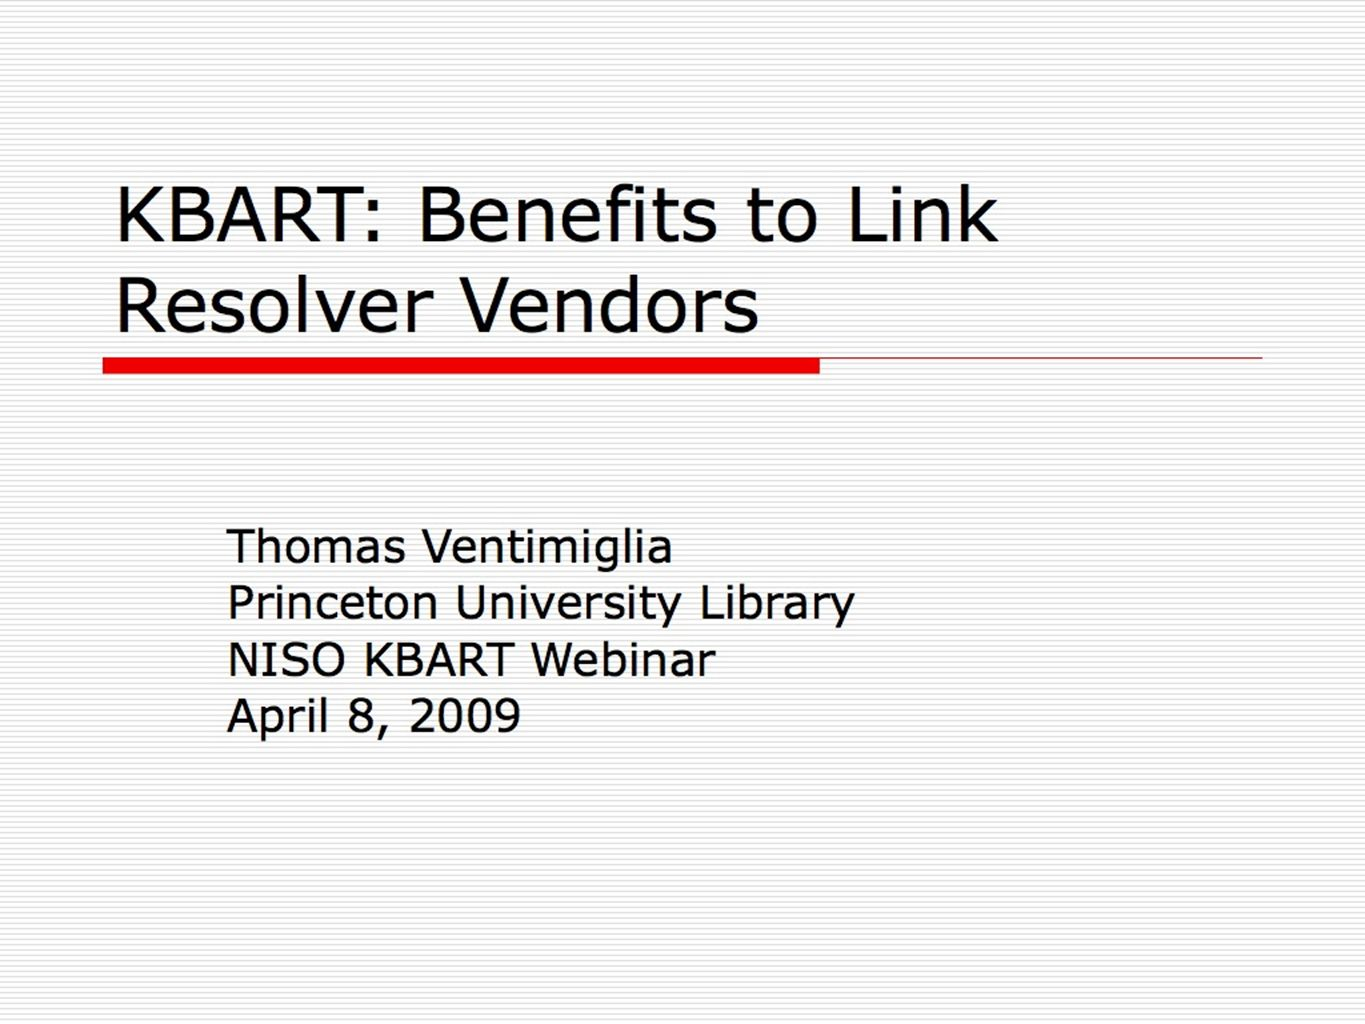 KBART: Benefits to Link Resolver Vendors Thomas Ventimiglia Princeton University Library NISO KBART Webinar April 8, 2009